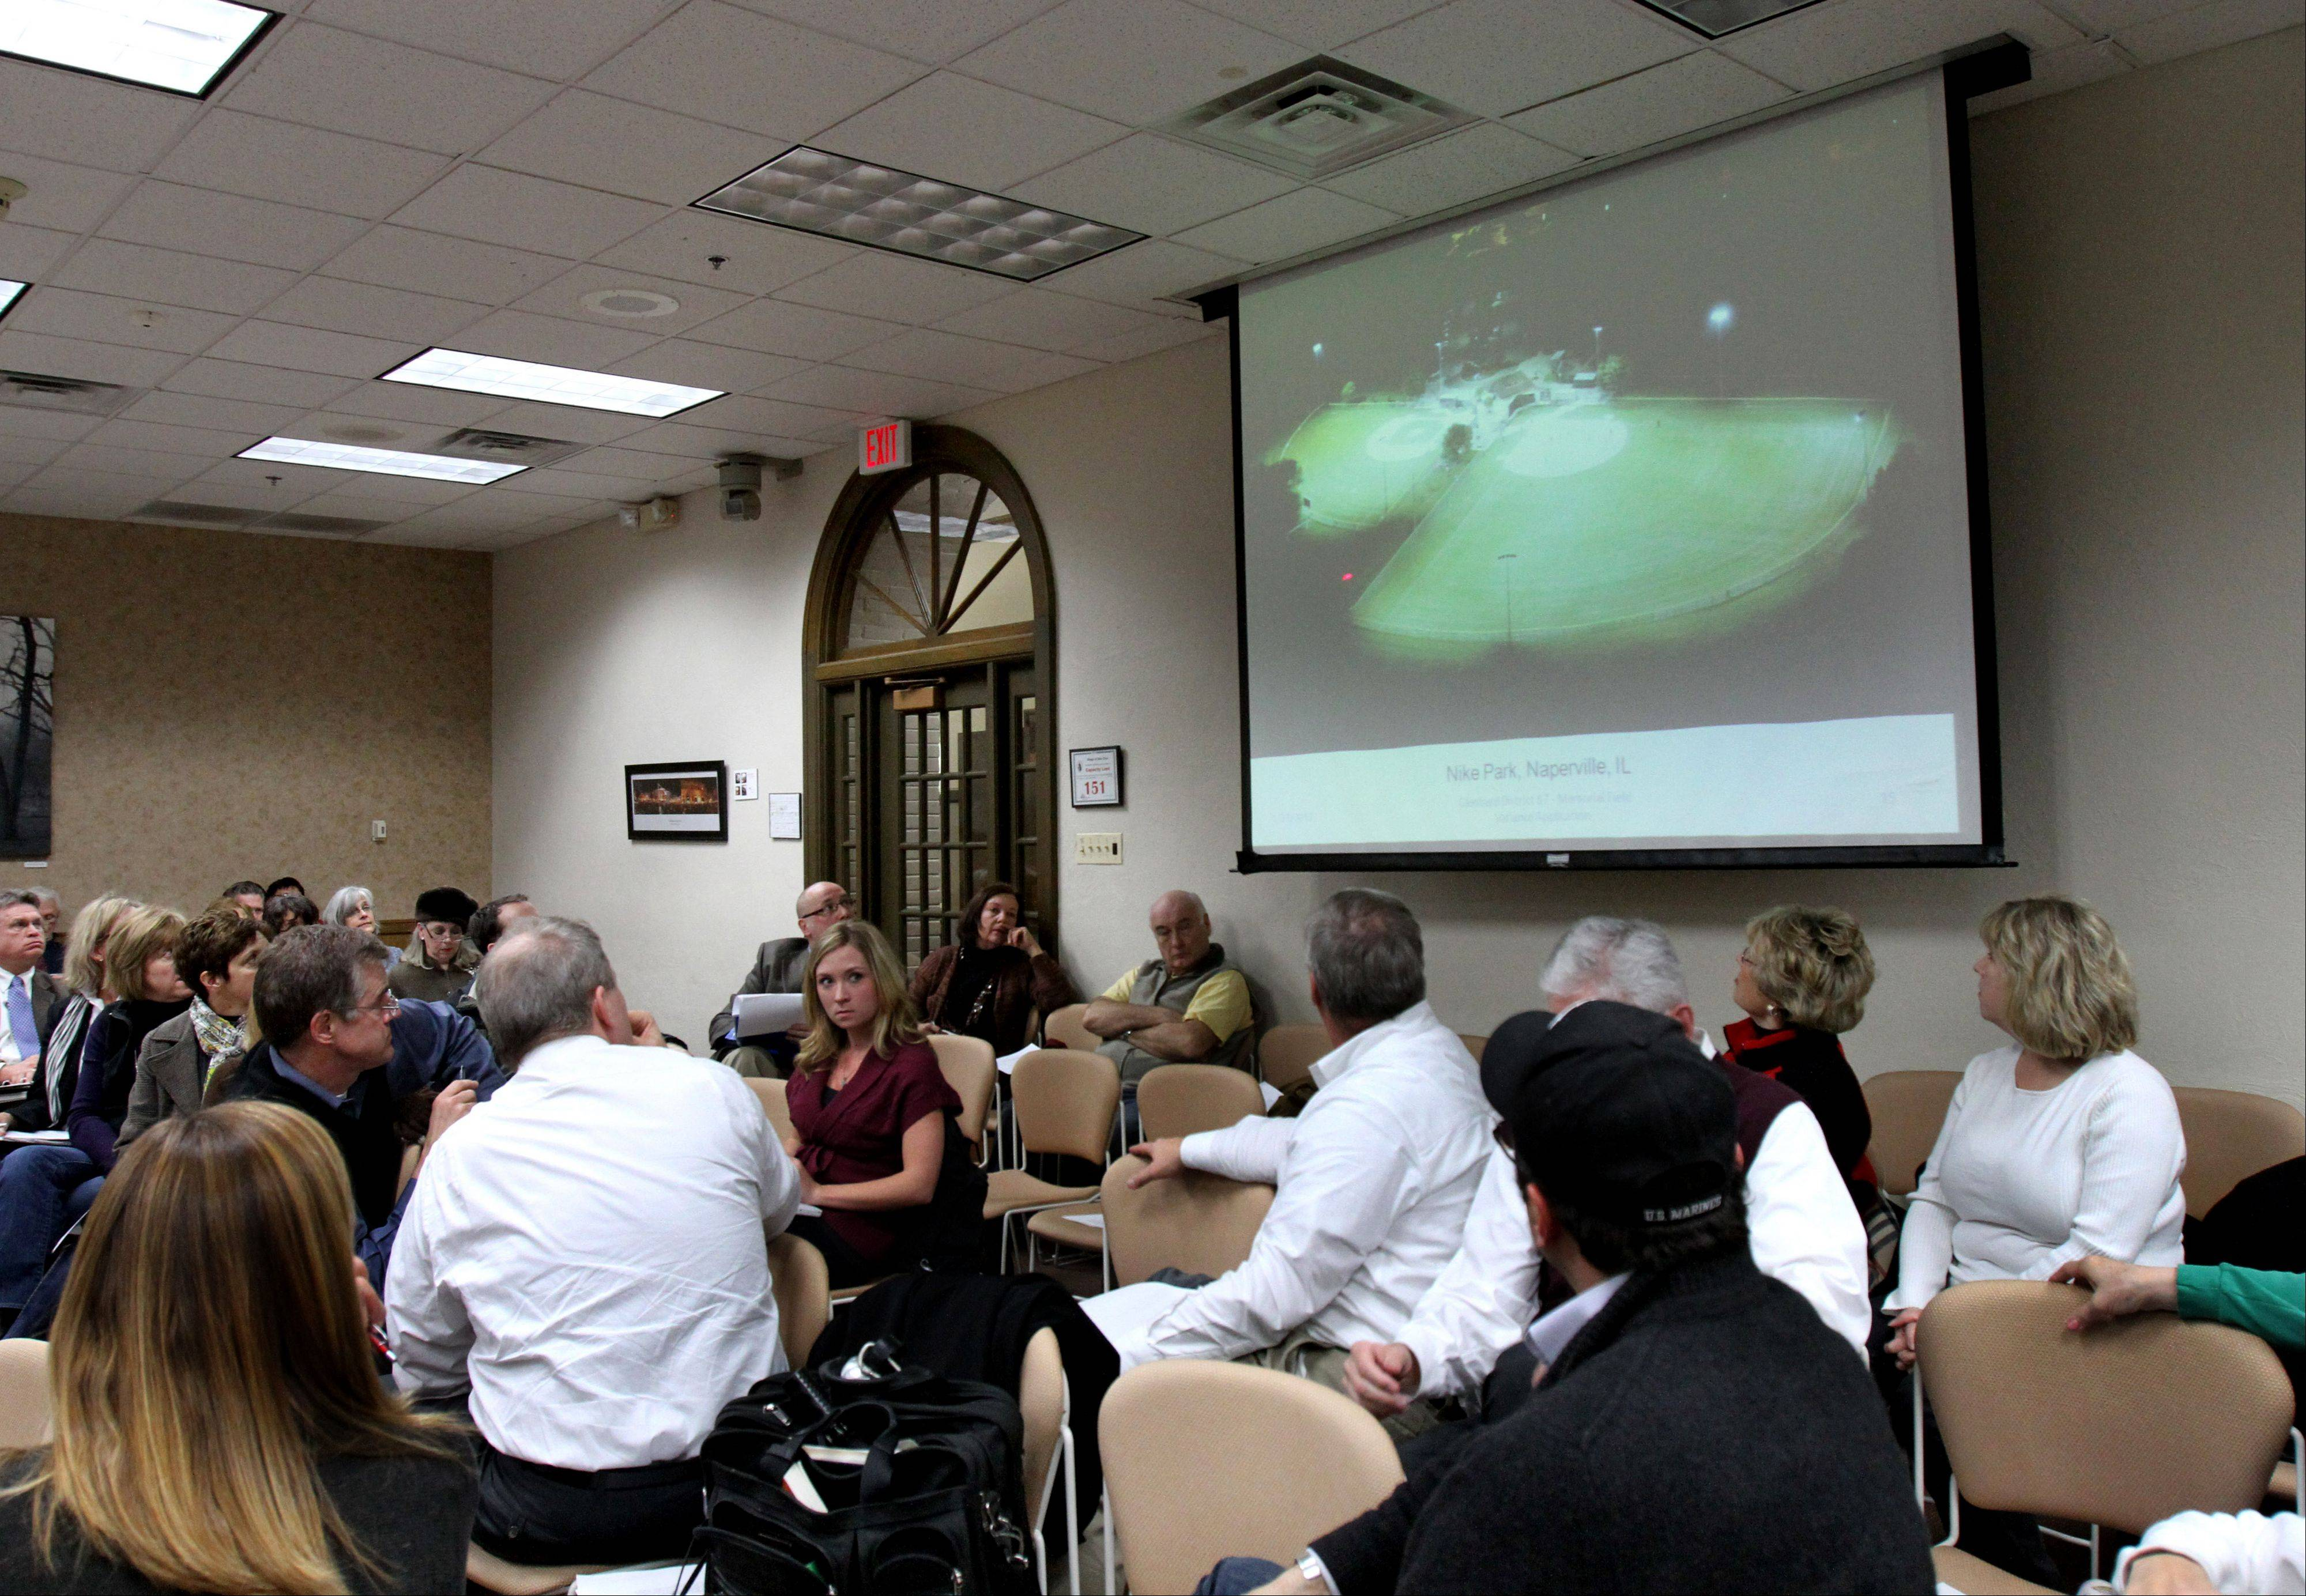 Glenbard officials show a photo of Nike Park in Naperville during a Glen Ellyn village board meeting Monday. They say the lighting there is comparable to what is proposed for Memorial Field at Glenbard West.